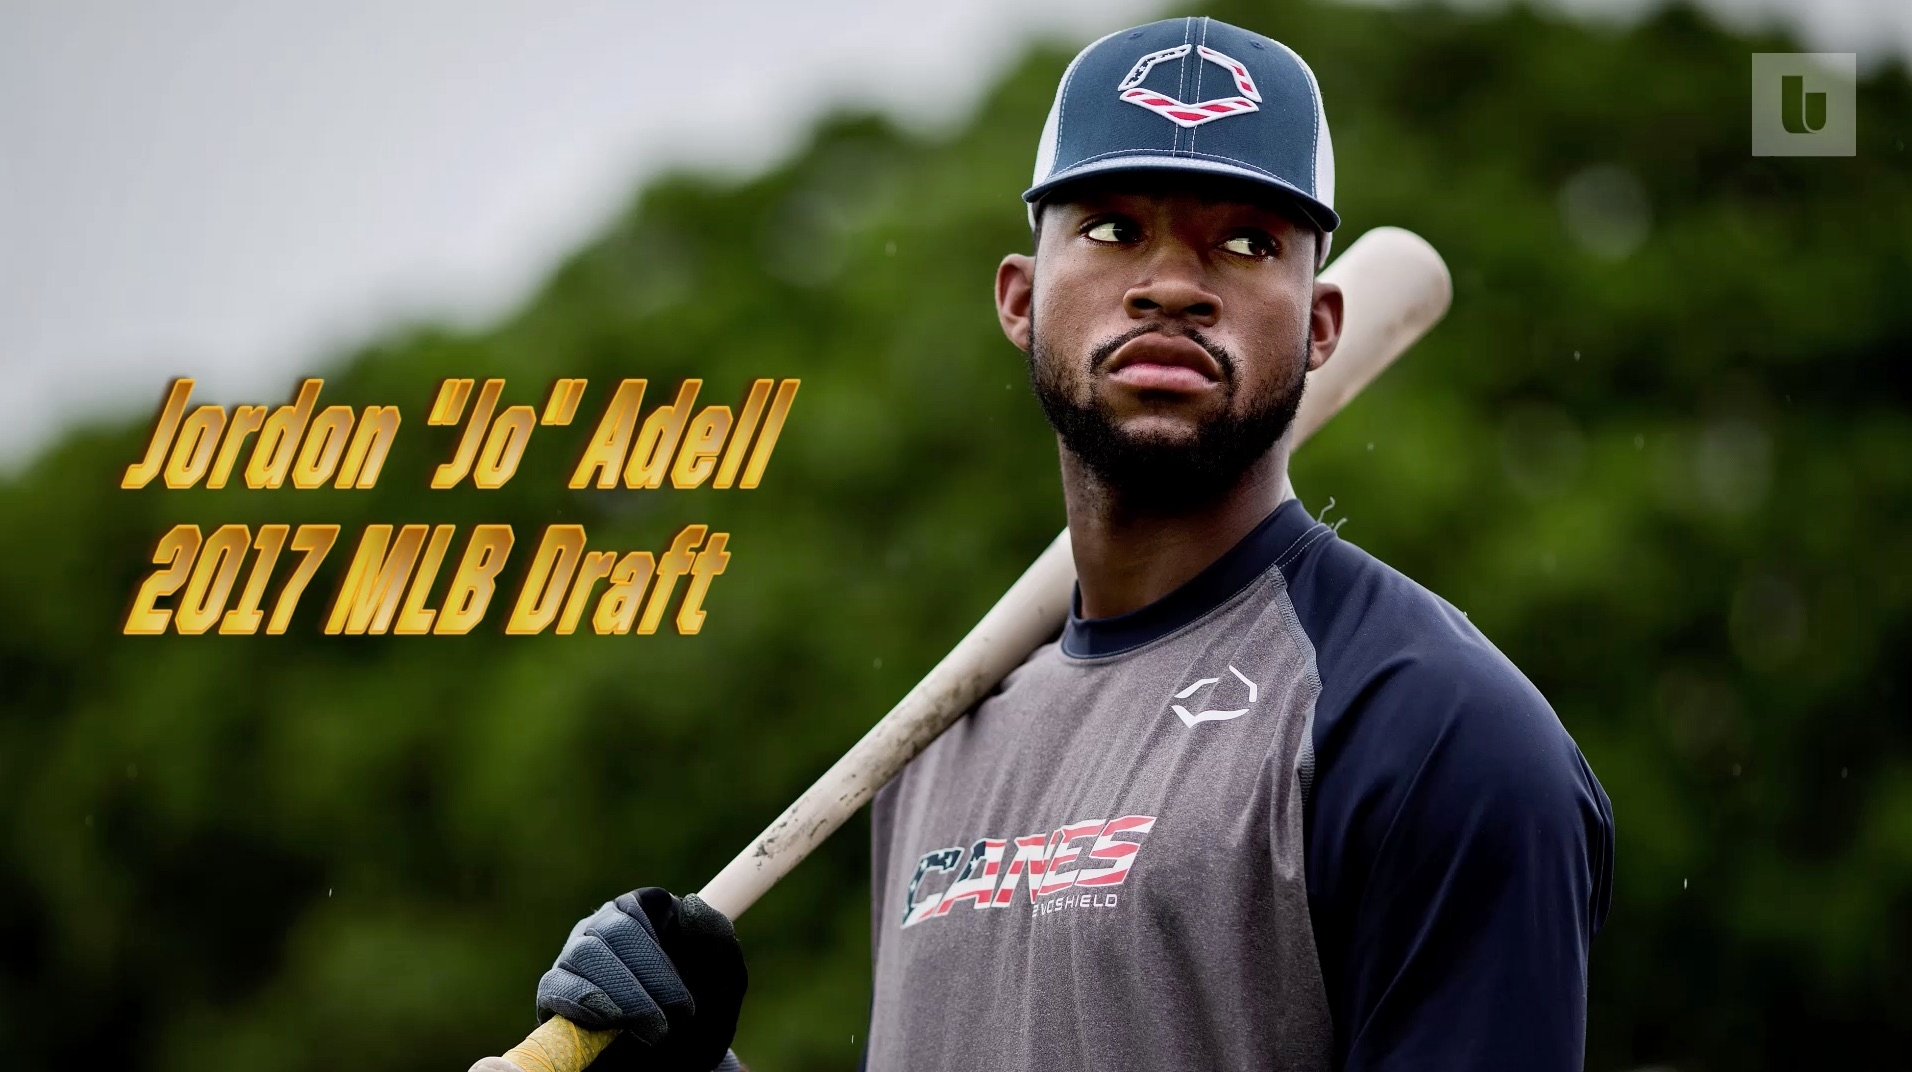 4a7f639a8b1e6 Adell could put his professional career on hold to play college baseball at  the University of Louisville